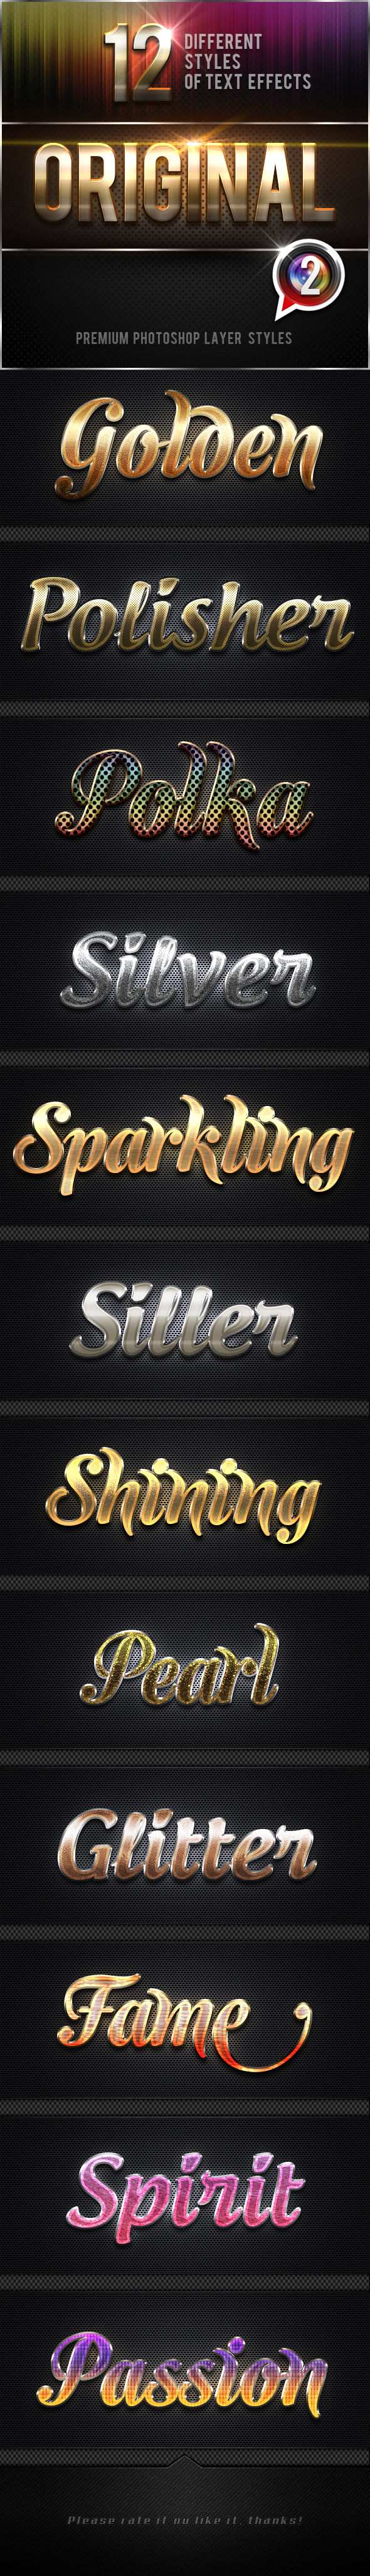 12 Original Photoshop Text Effects Vol.2 - Text Effects Styles